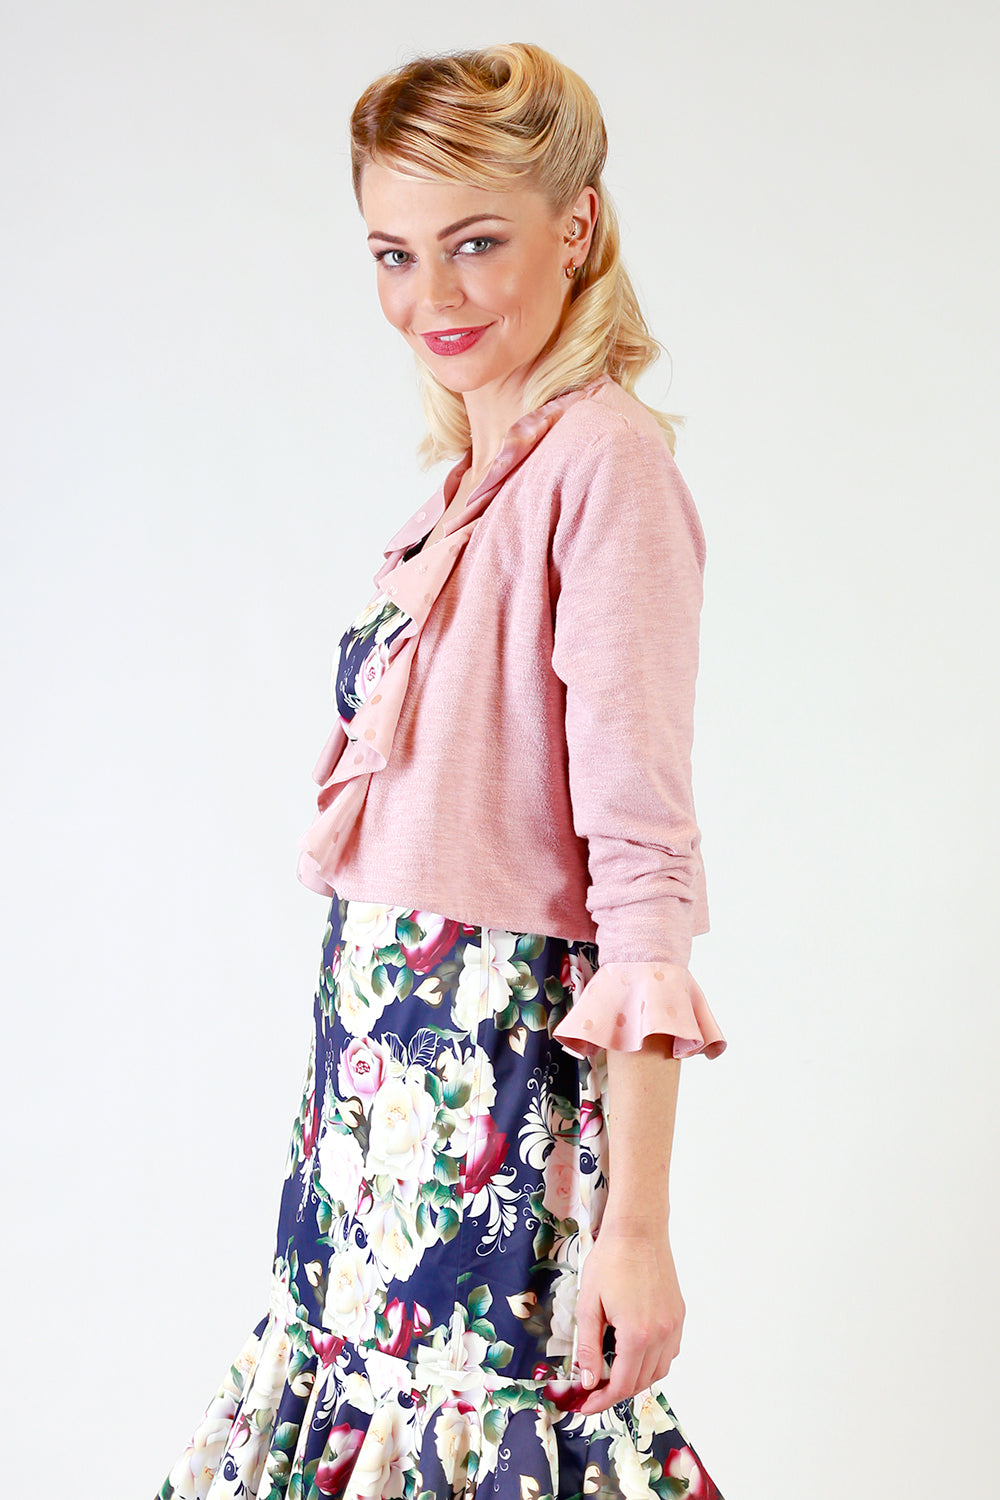 Love Letter Cardigan | Womens Cardigans NZ | Annah Stretton Tops NZ | Designer Fashion NZ